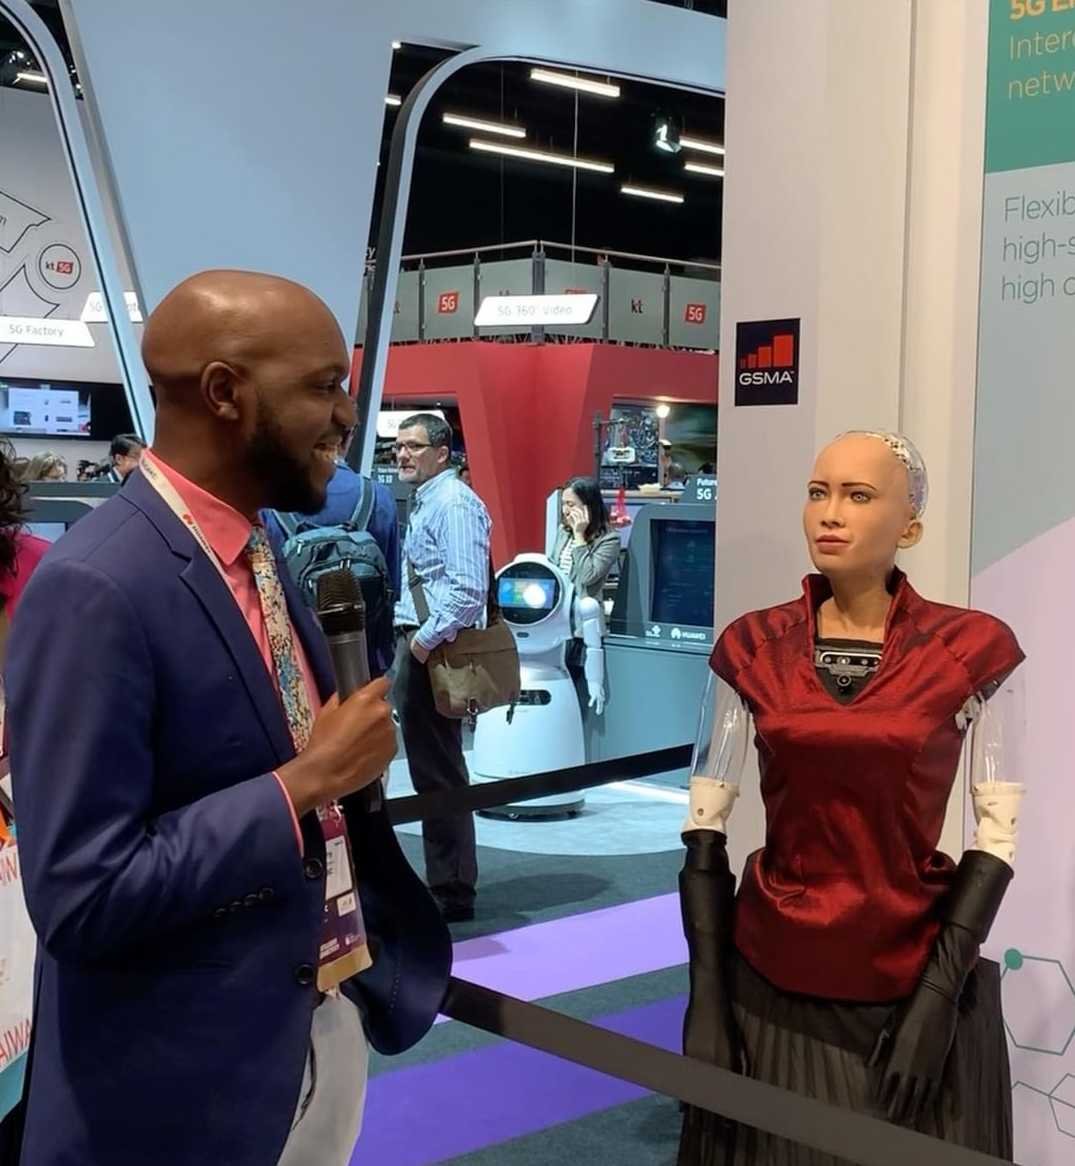 larry proposing e1551153373460 - Larry Madowo 'finds love' in a robot, pops the question